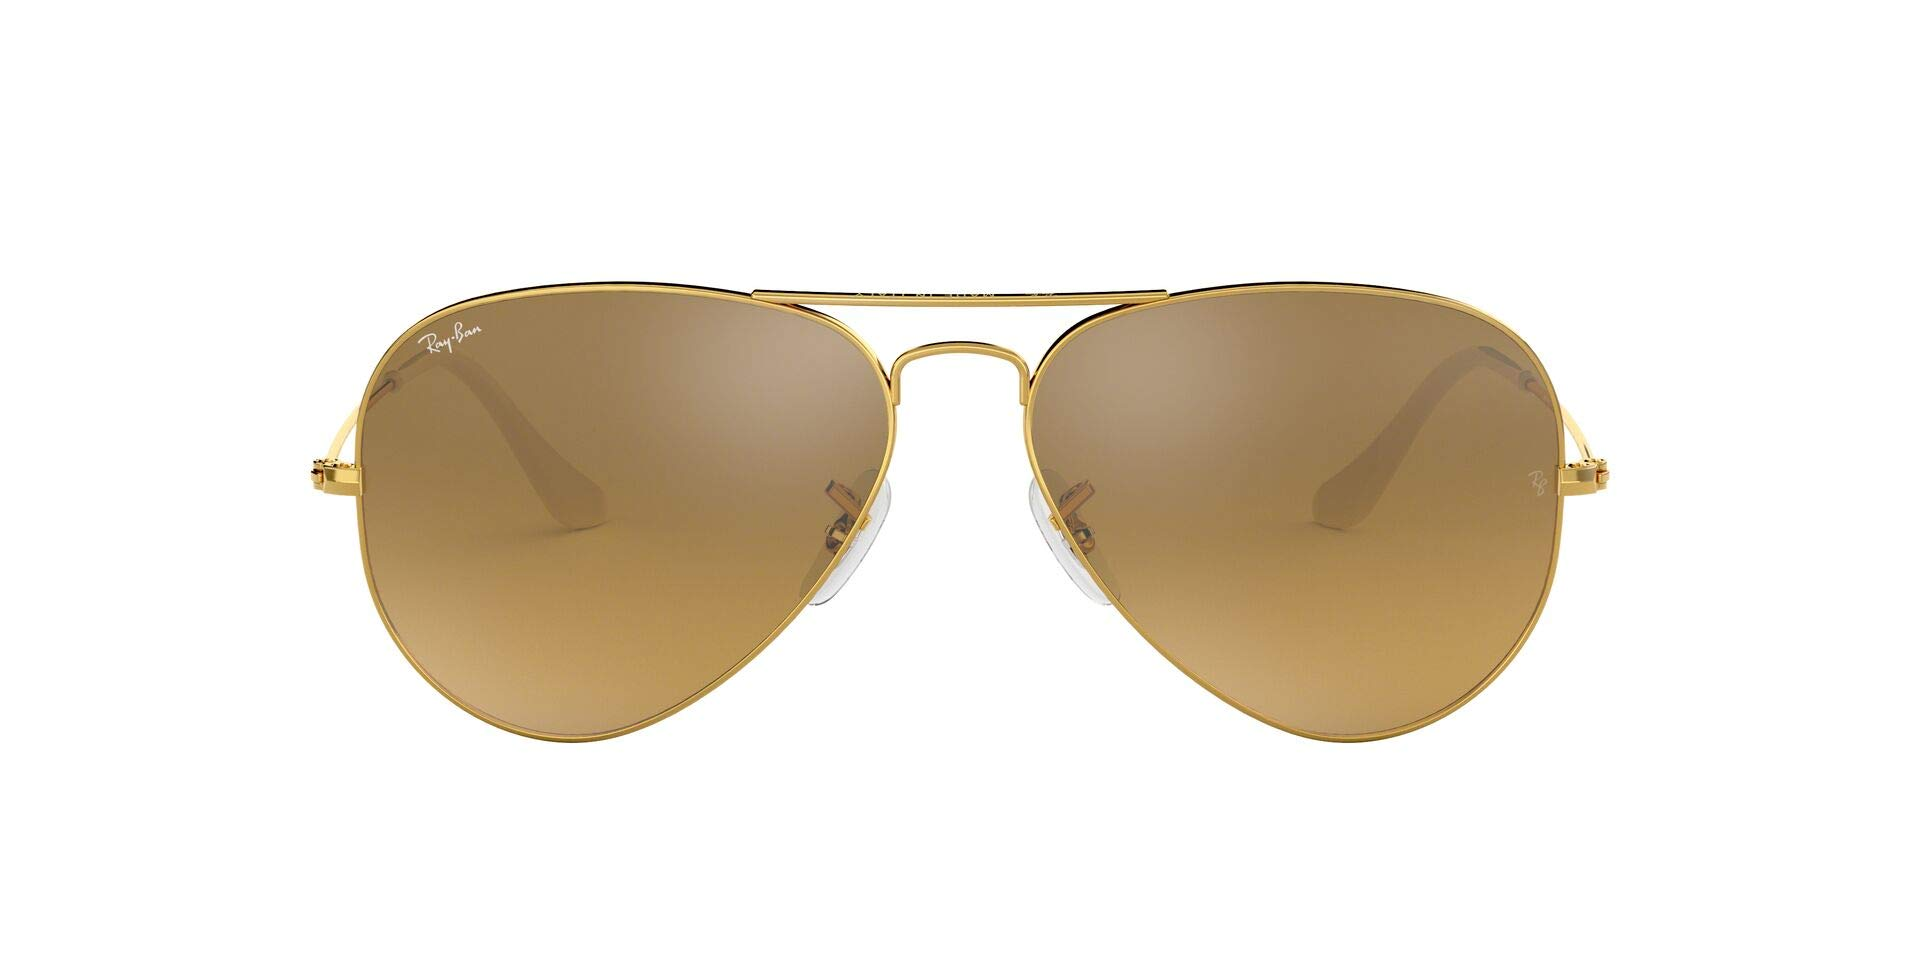 RAY-BAN RB3025 Aviator Large Metal Sunglasses, Gold/Brown Mirror Gradient, 62 mm by RAY-BAN